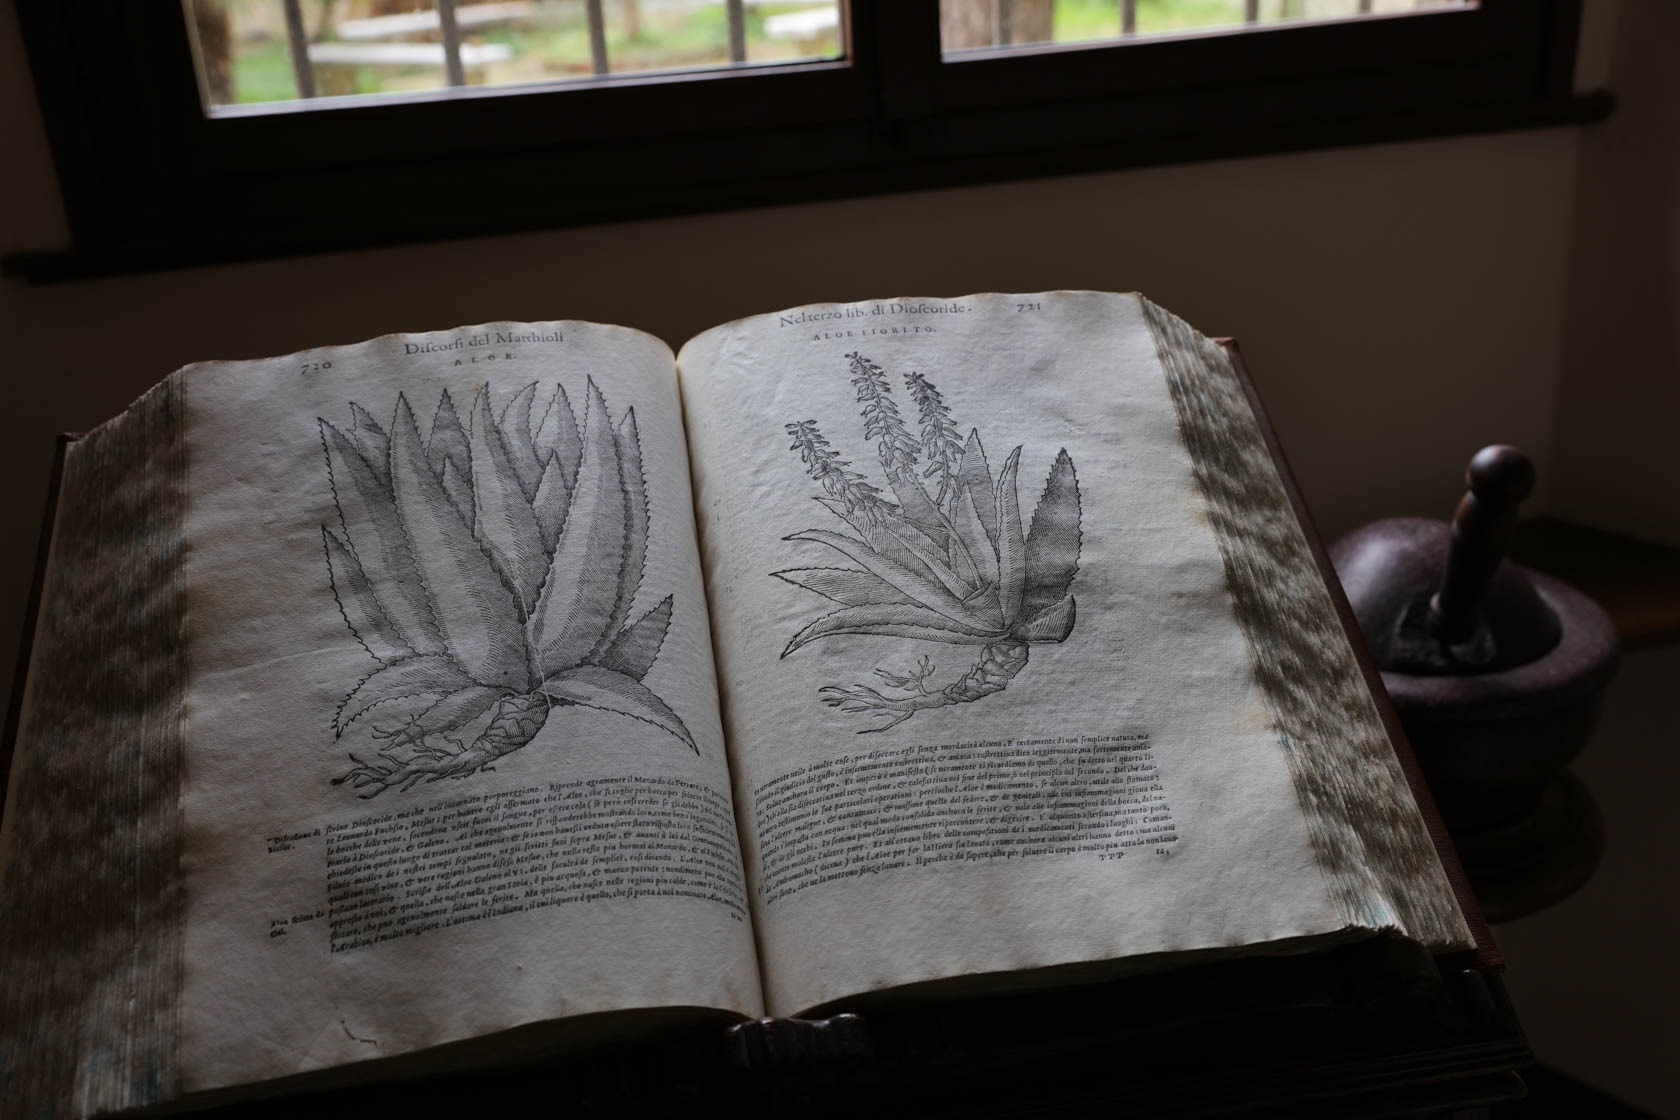 Botanist book taken by Canon EOS 5DS DSLR camera